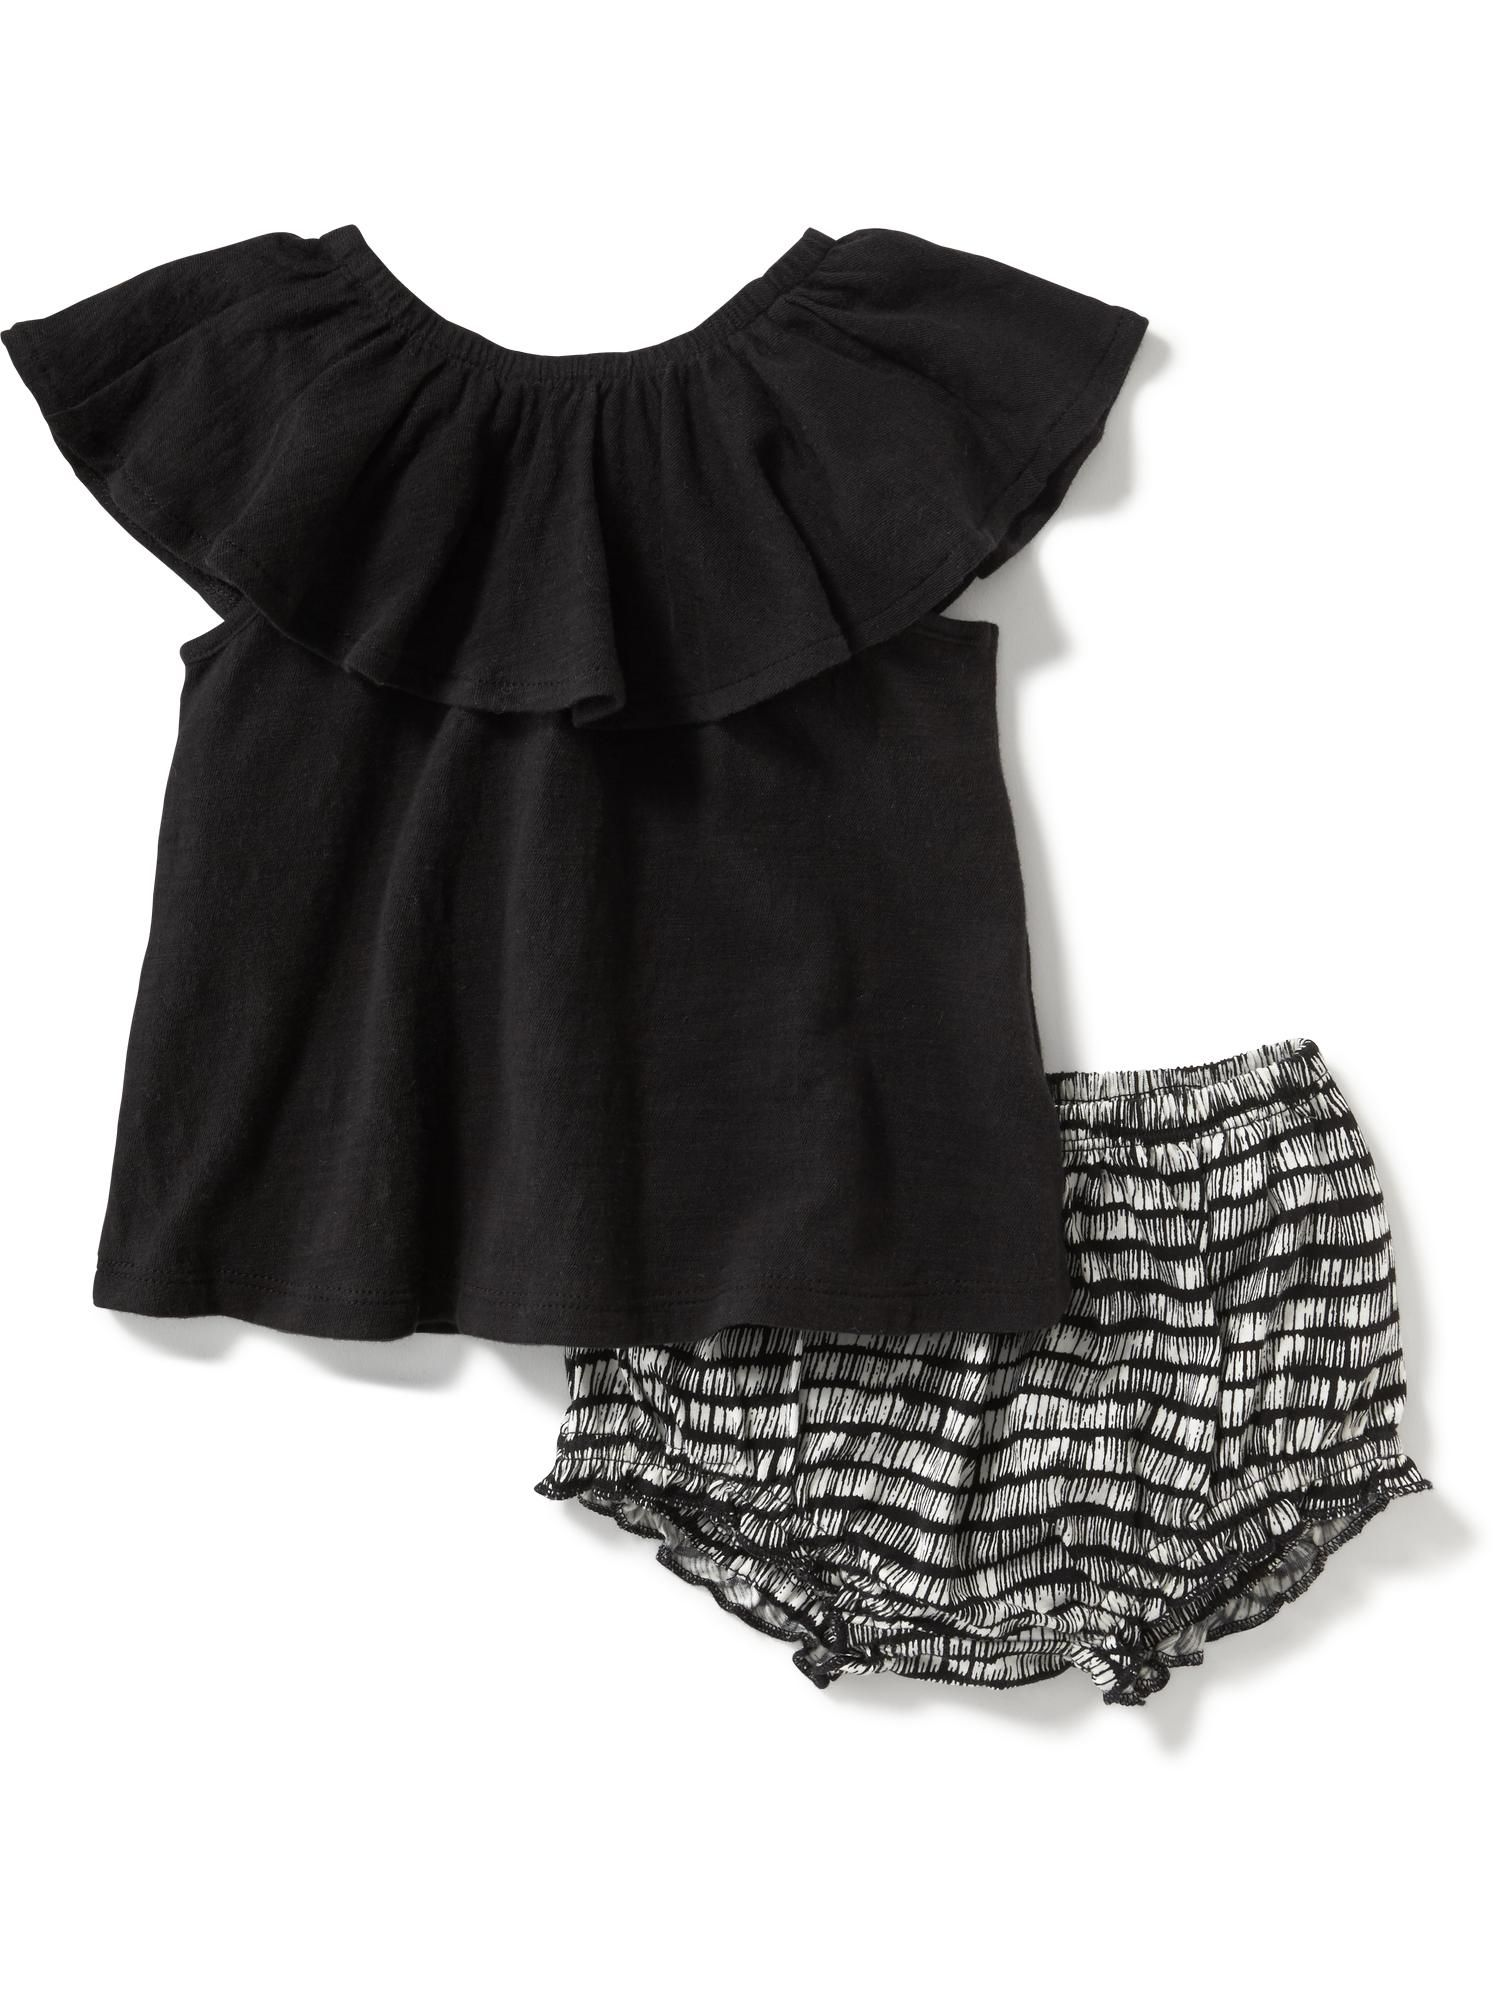 Ruffle Top & Bloomer Set for Baby Old Navy Jean Bean